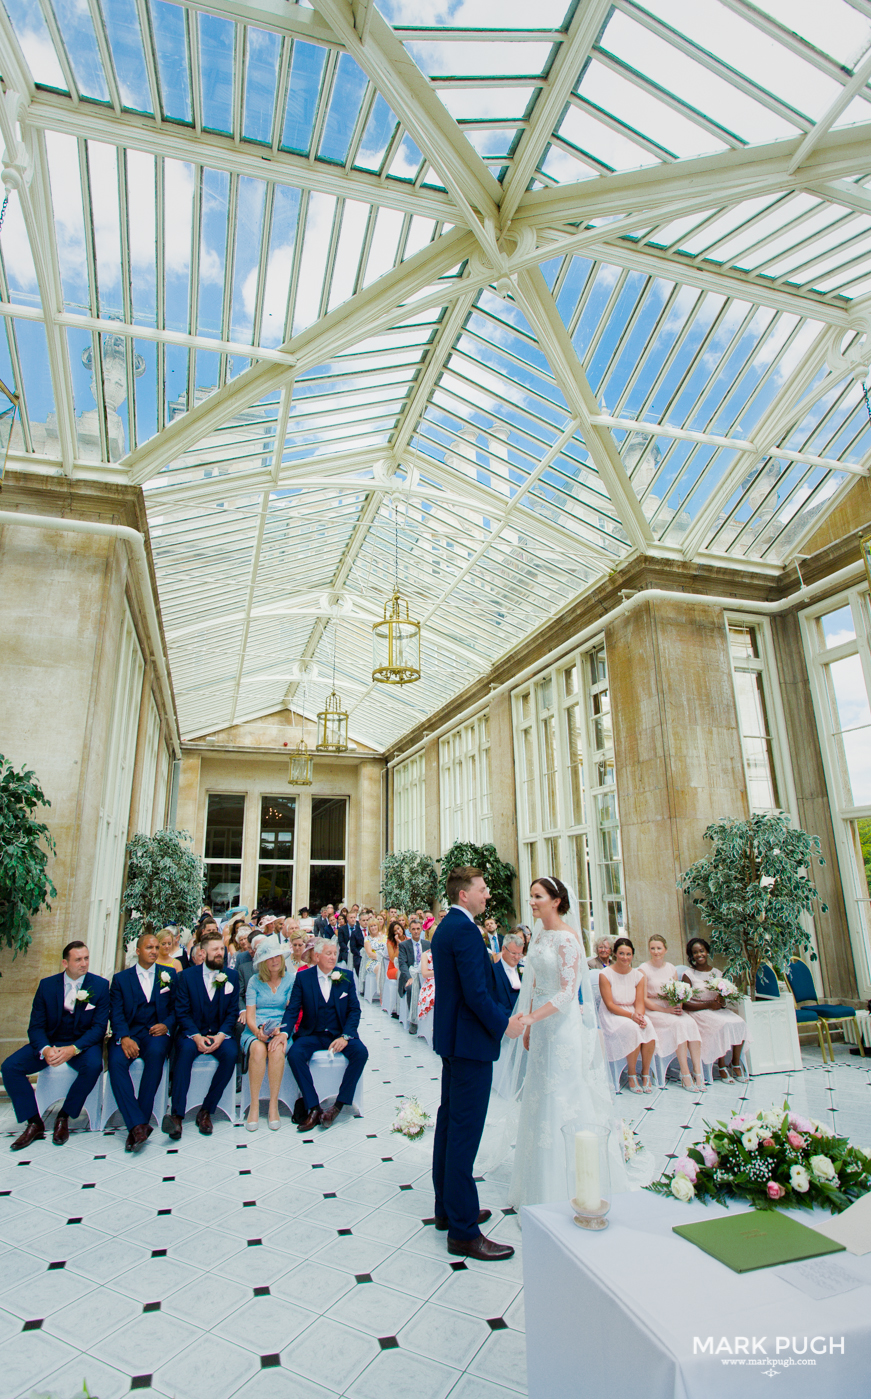 054 Laura and Matt - Stoke Rochford Hall Wedding by Mark Pugh www.markpugh.com - Do not edit or crop this image without consent 0332.jpg